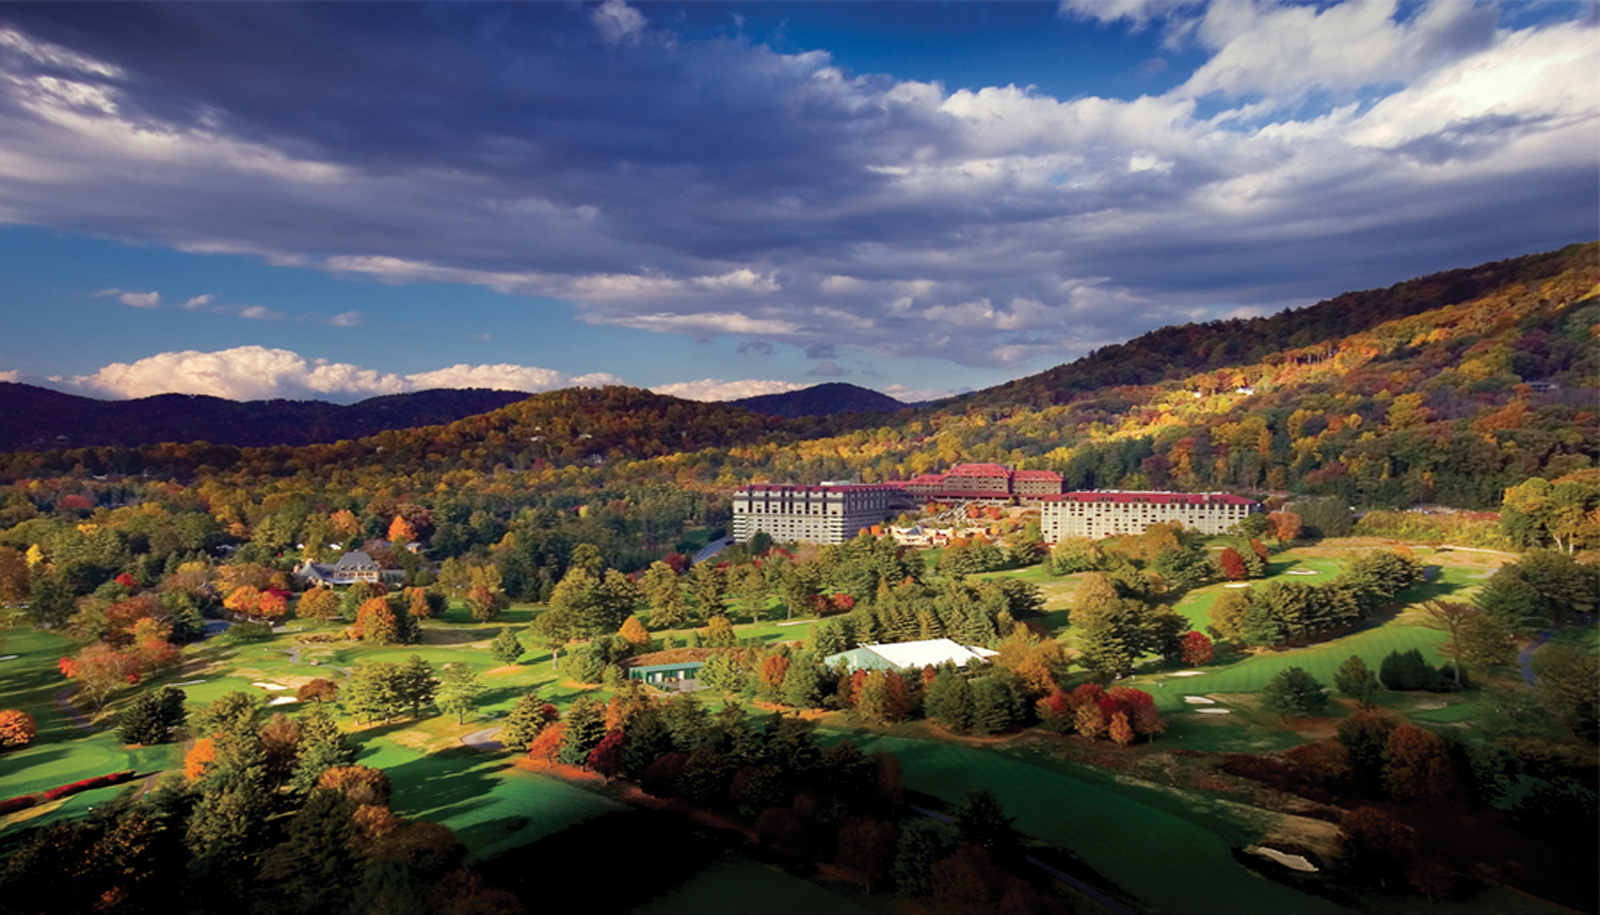 Basic to Advanced Echocardiography | From the Blue Ridge Mountains of Asheville